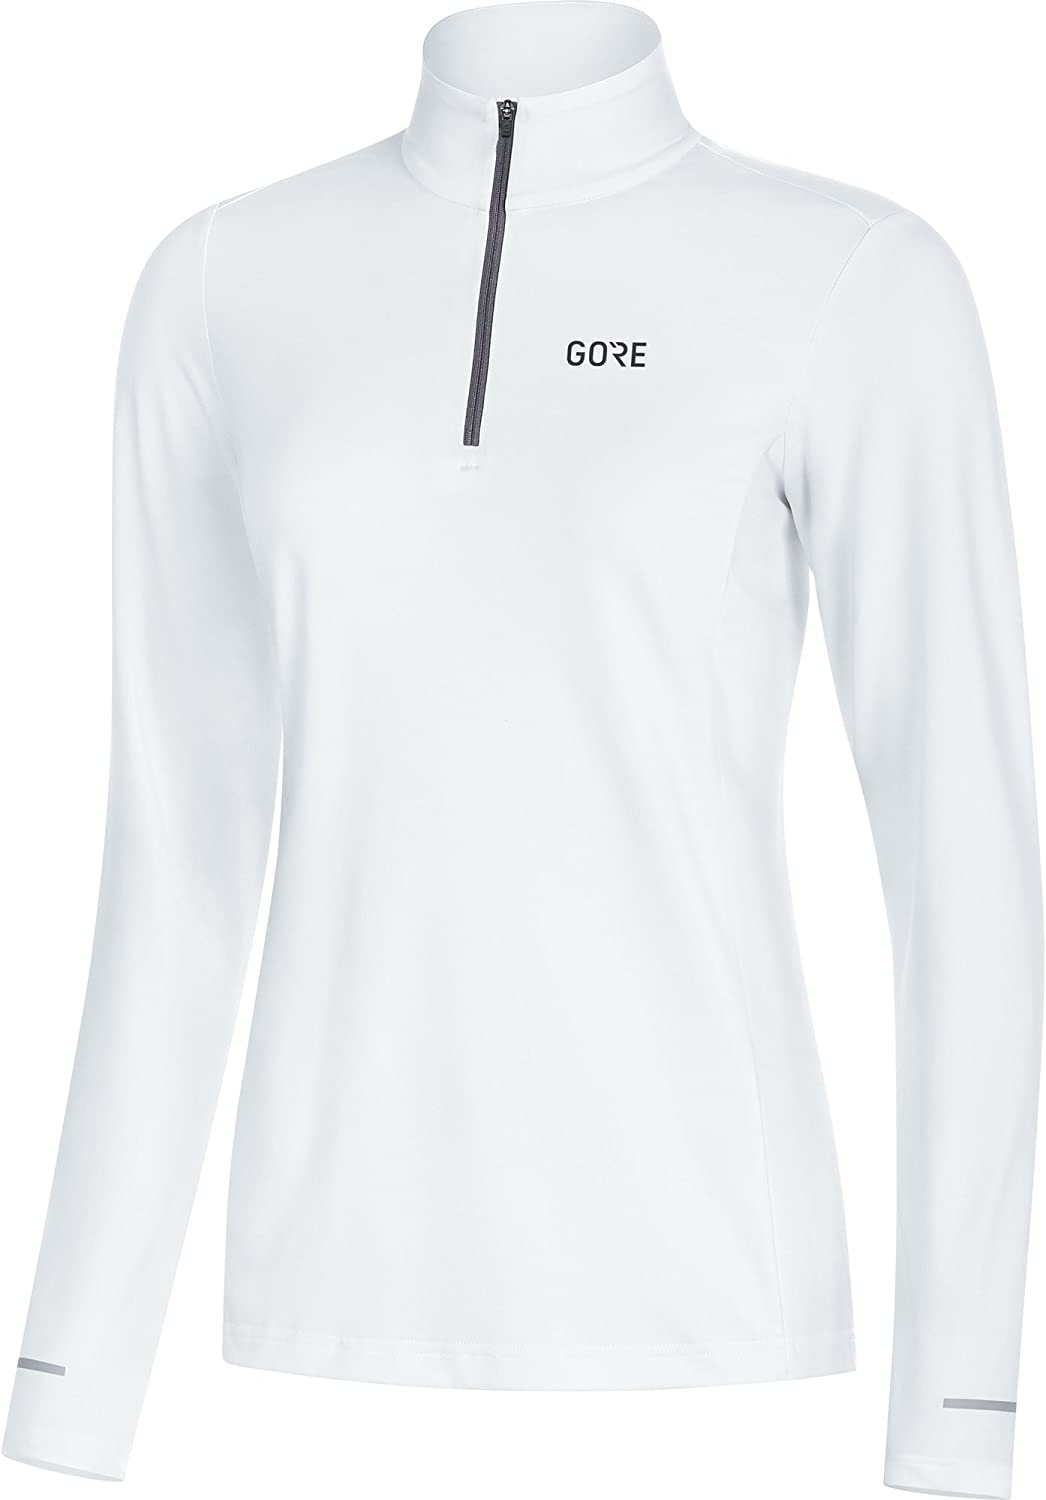 GORE Wear Women's Breathable Long Sleeve Running Shirt, GORE Wear R3 Women Long Sleeve Shirt, 100078